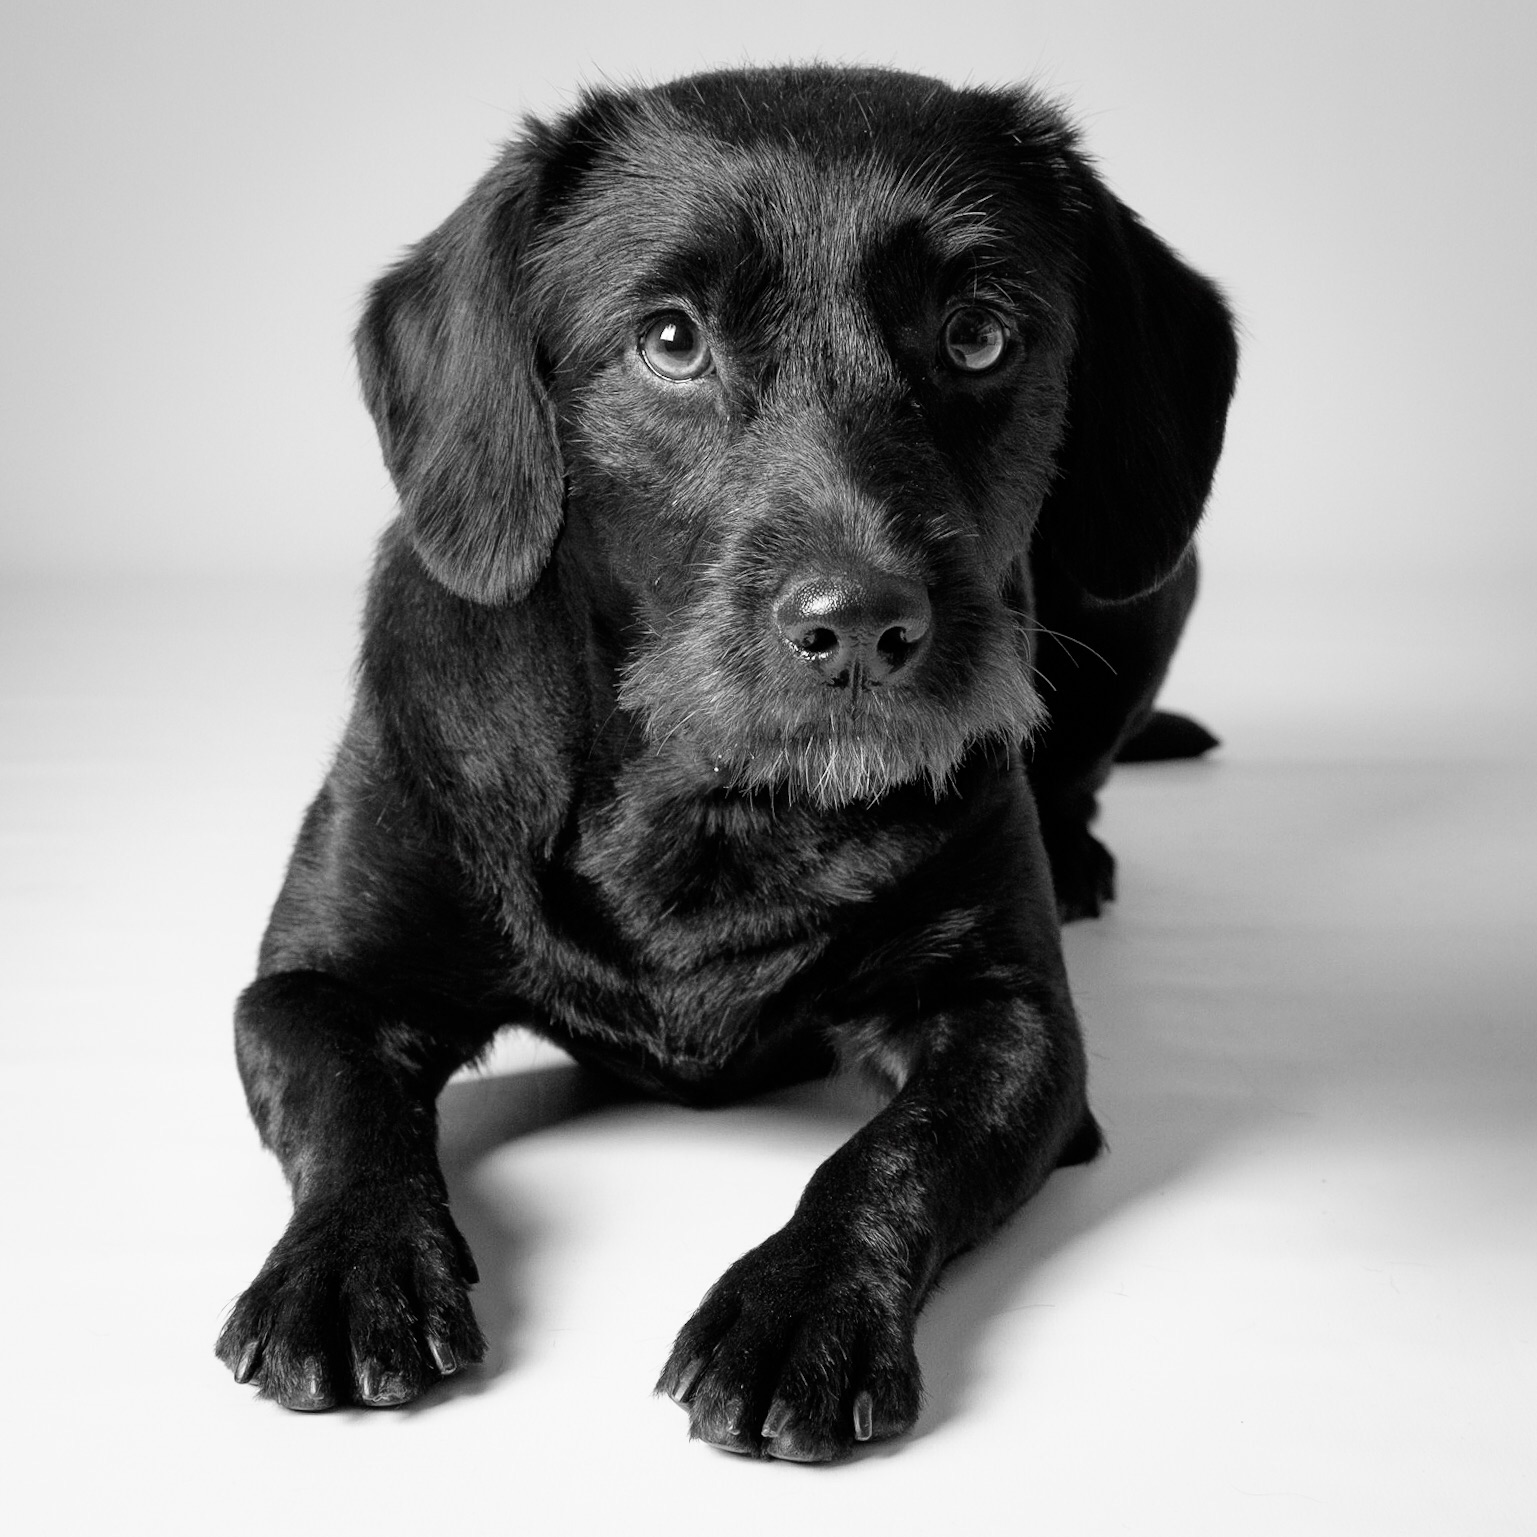 Pepper - black Labradoodle laying down facing front on grey background